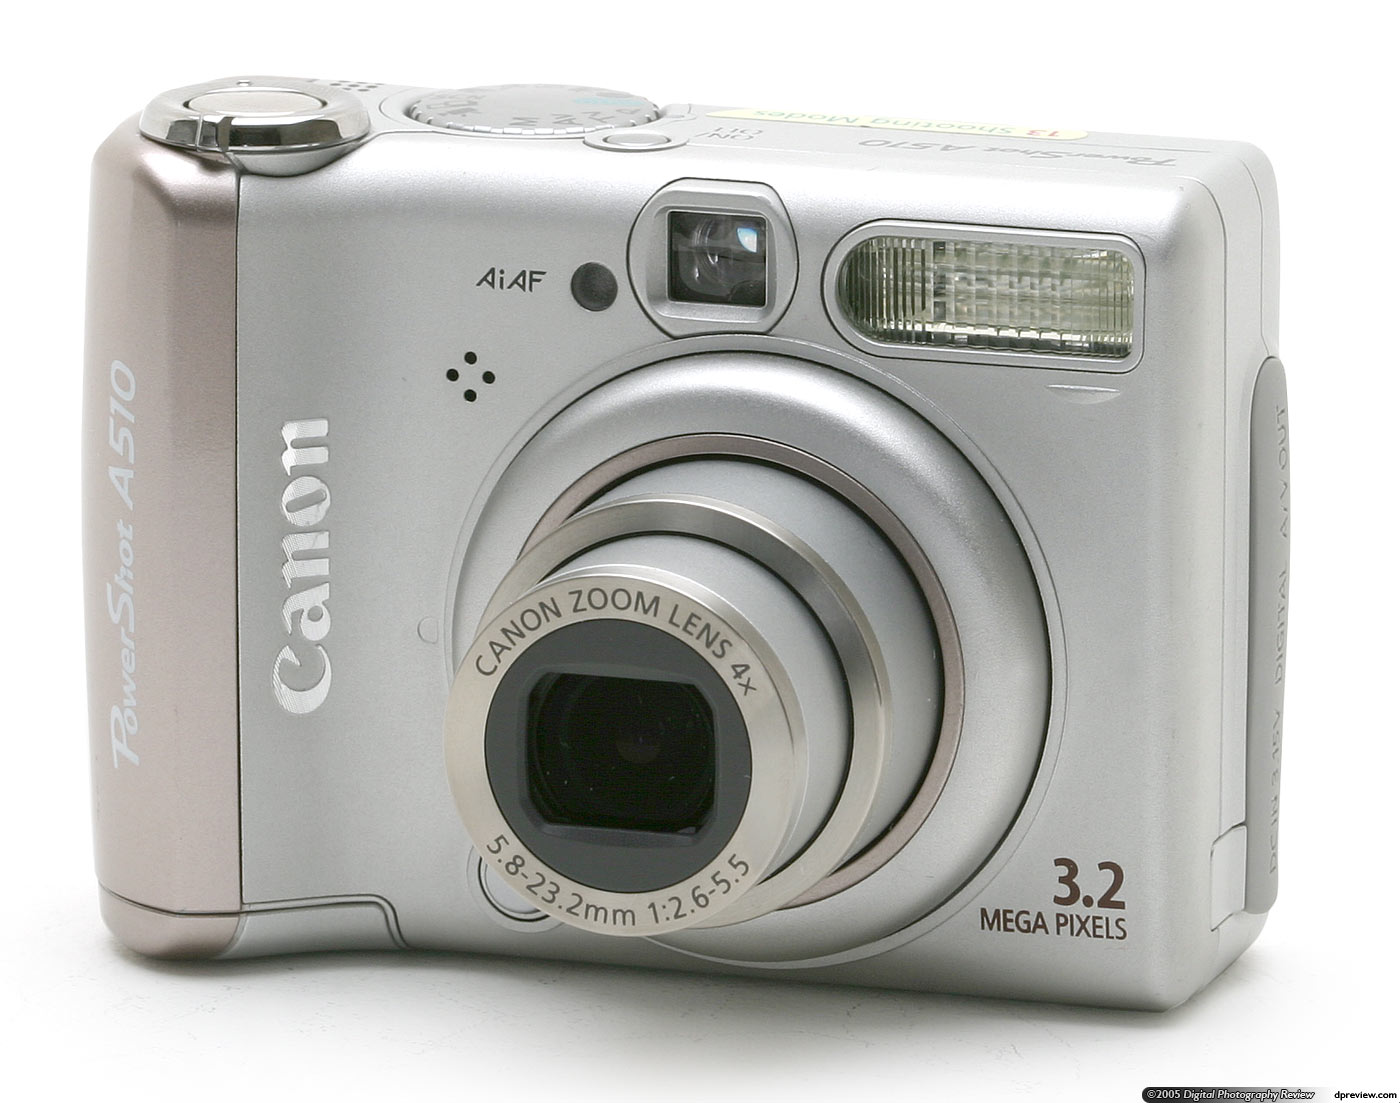 canon powershot a510 review digital photography review rh dpreview com Pics of Canon PowerShot A510 Battery Canon PowerShot A510